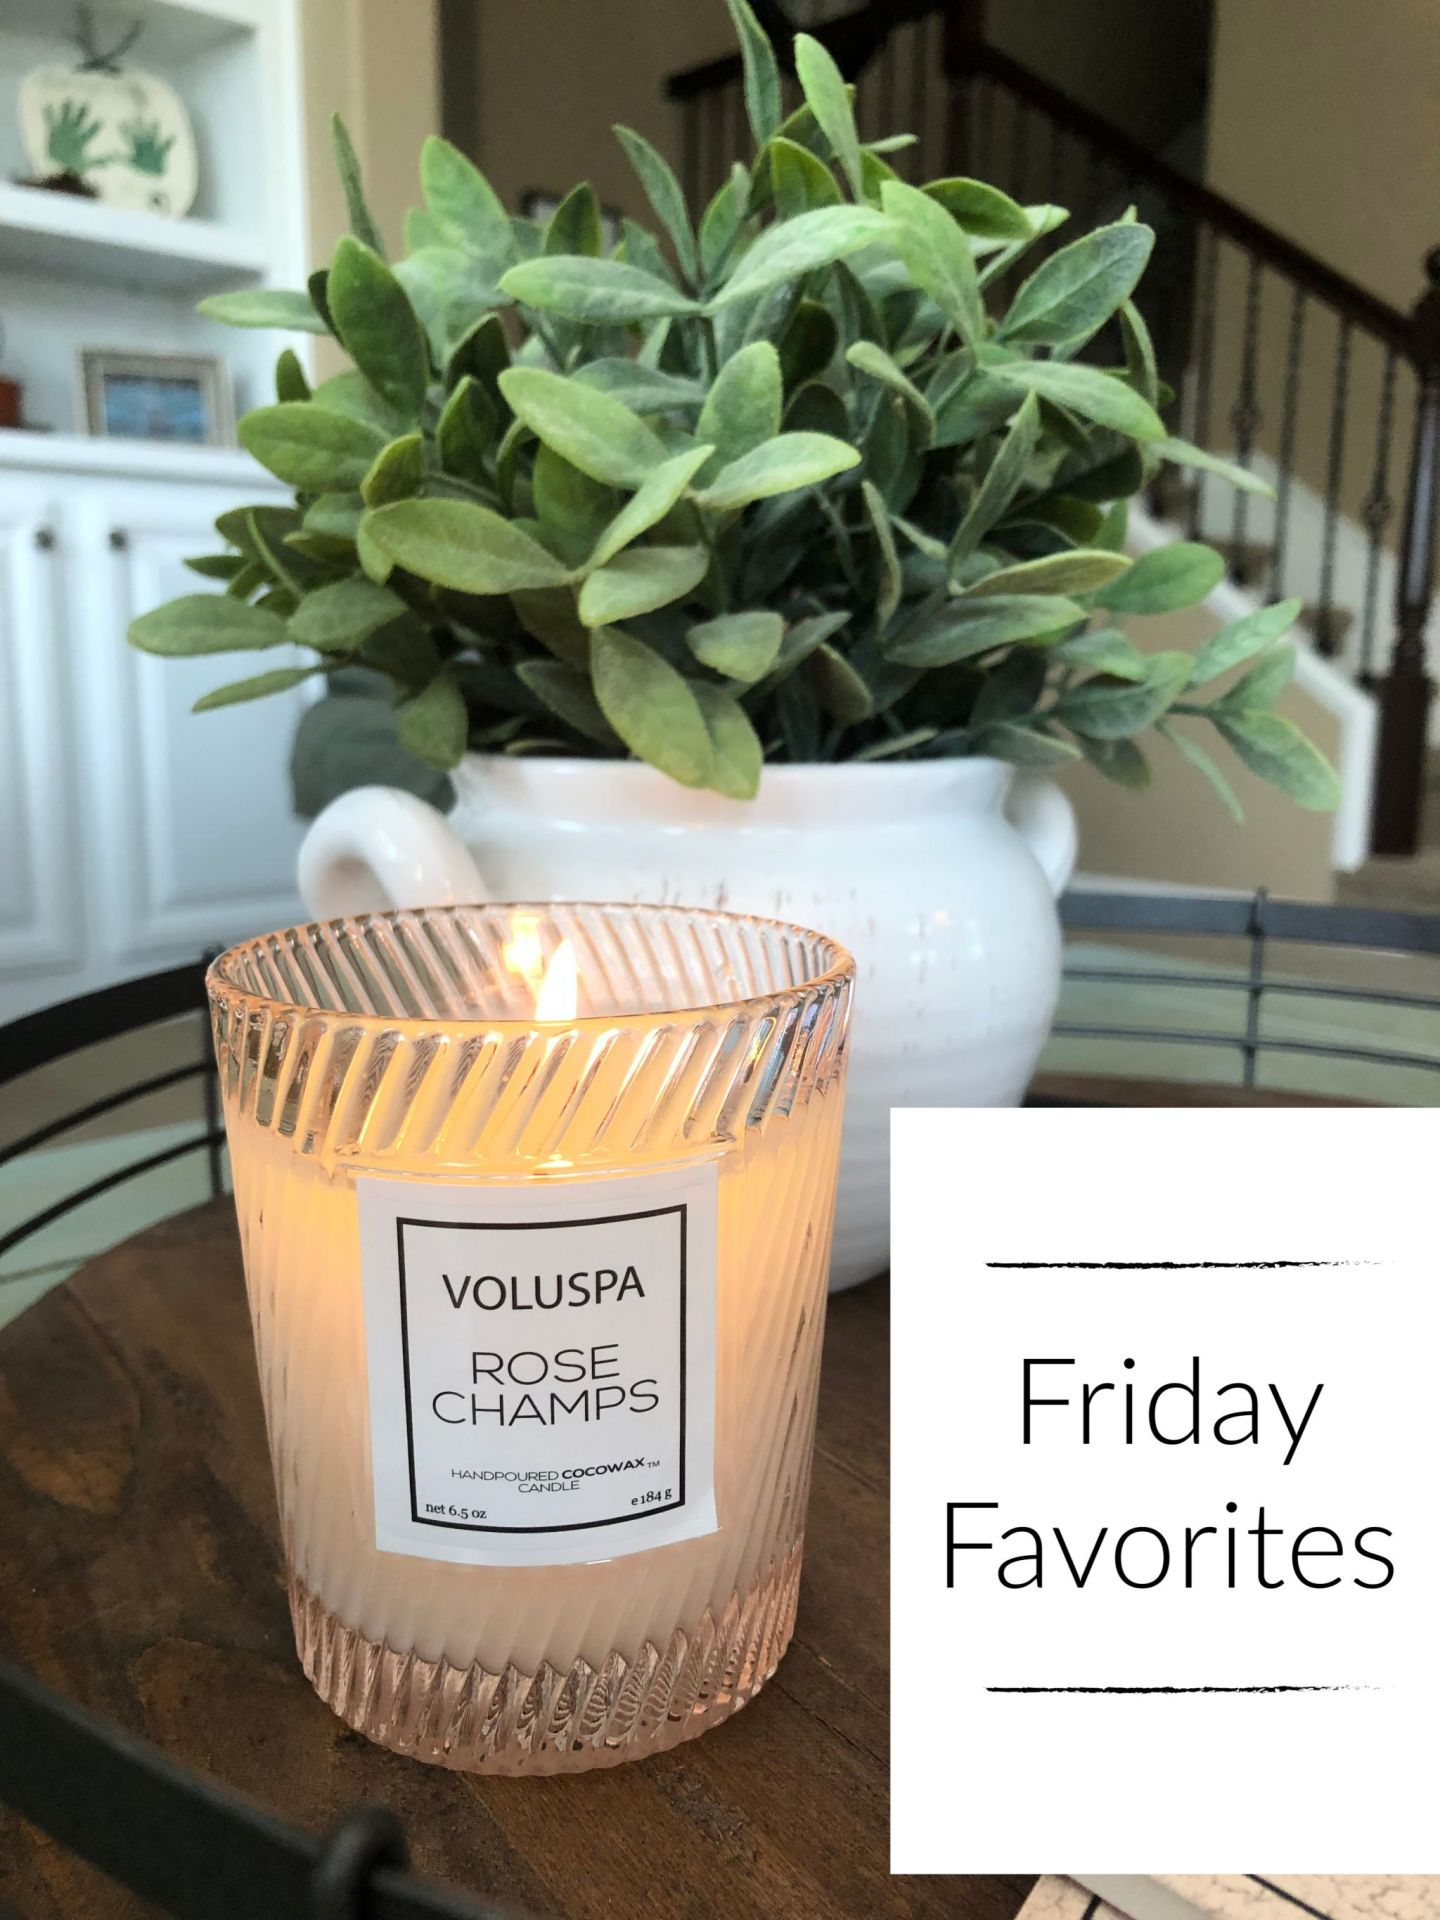 Friday Favorites #154